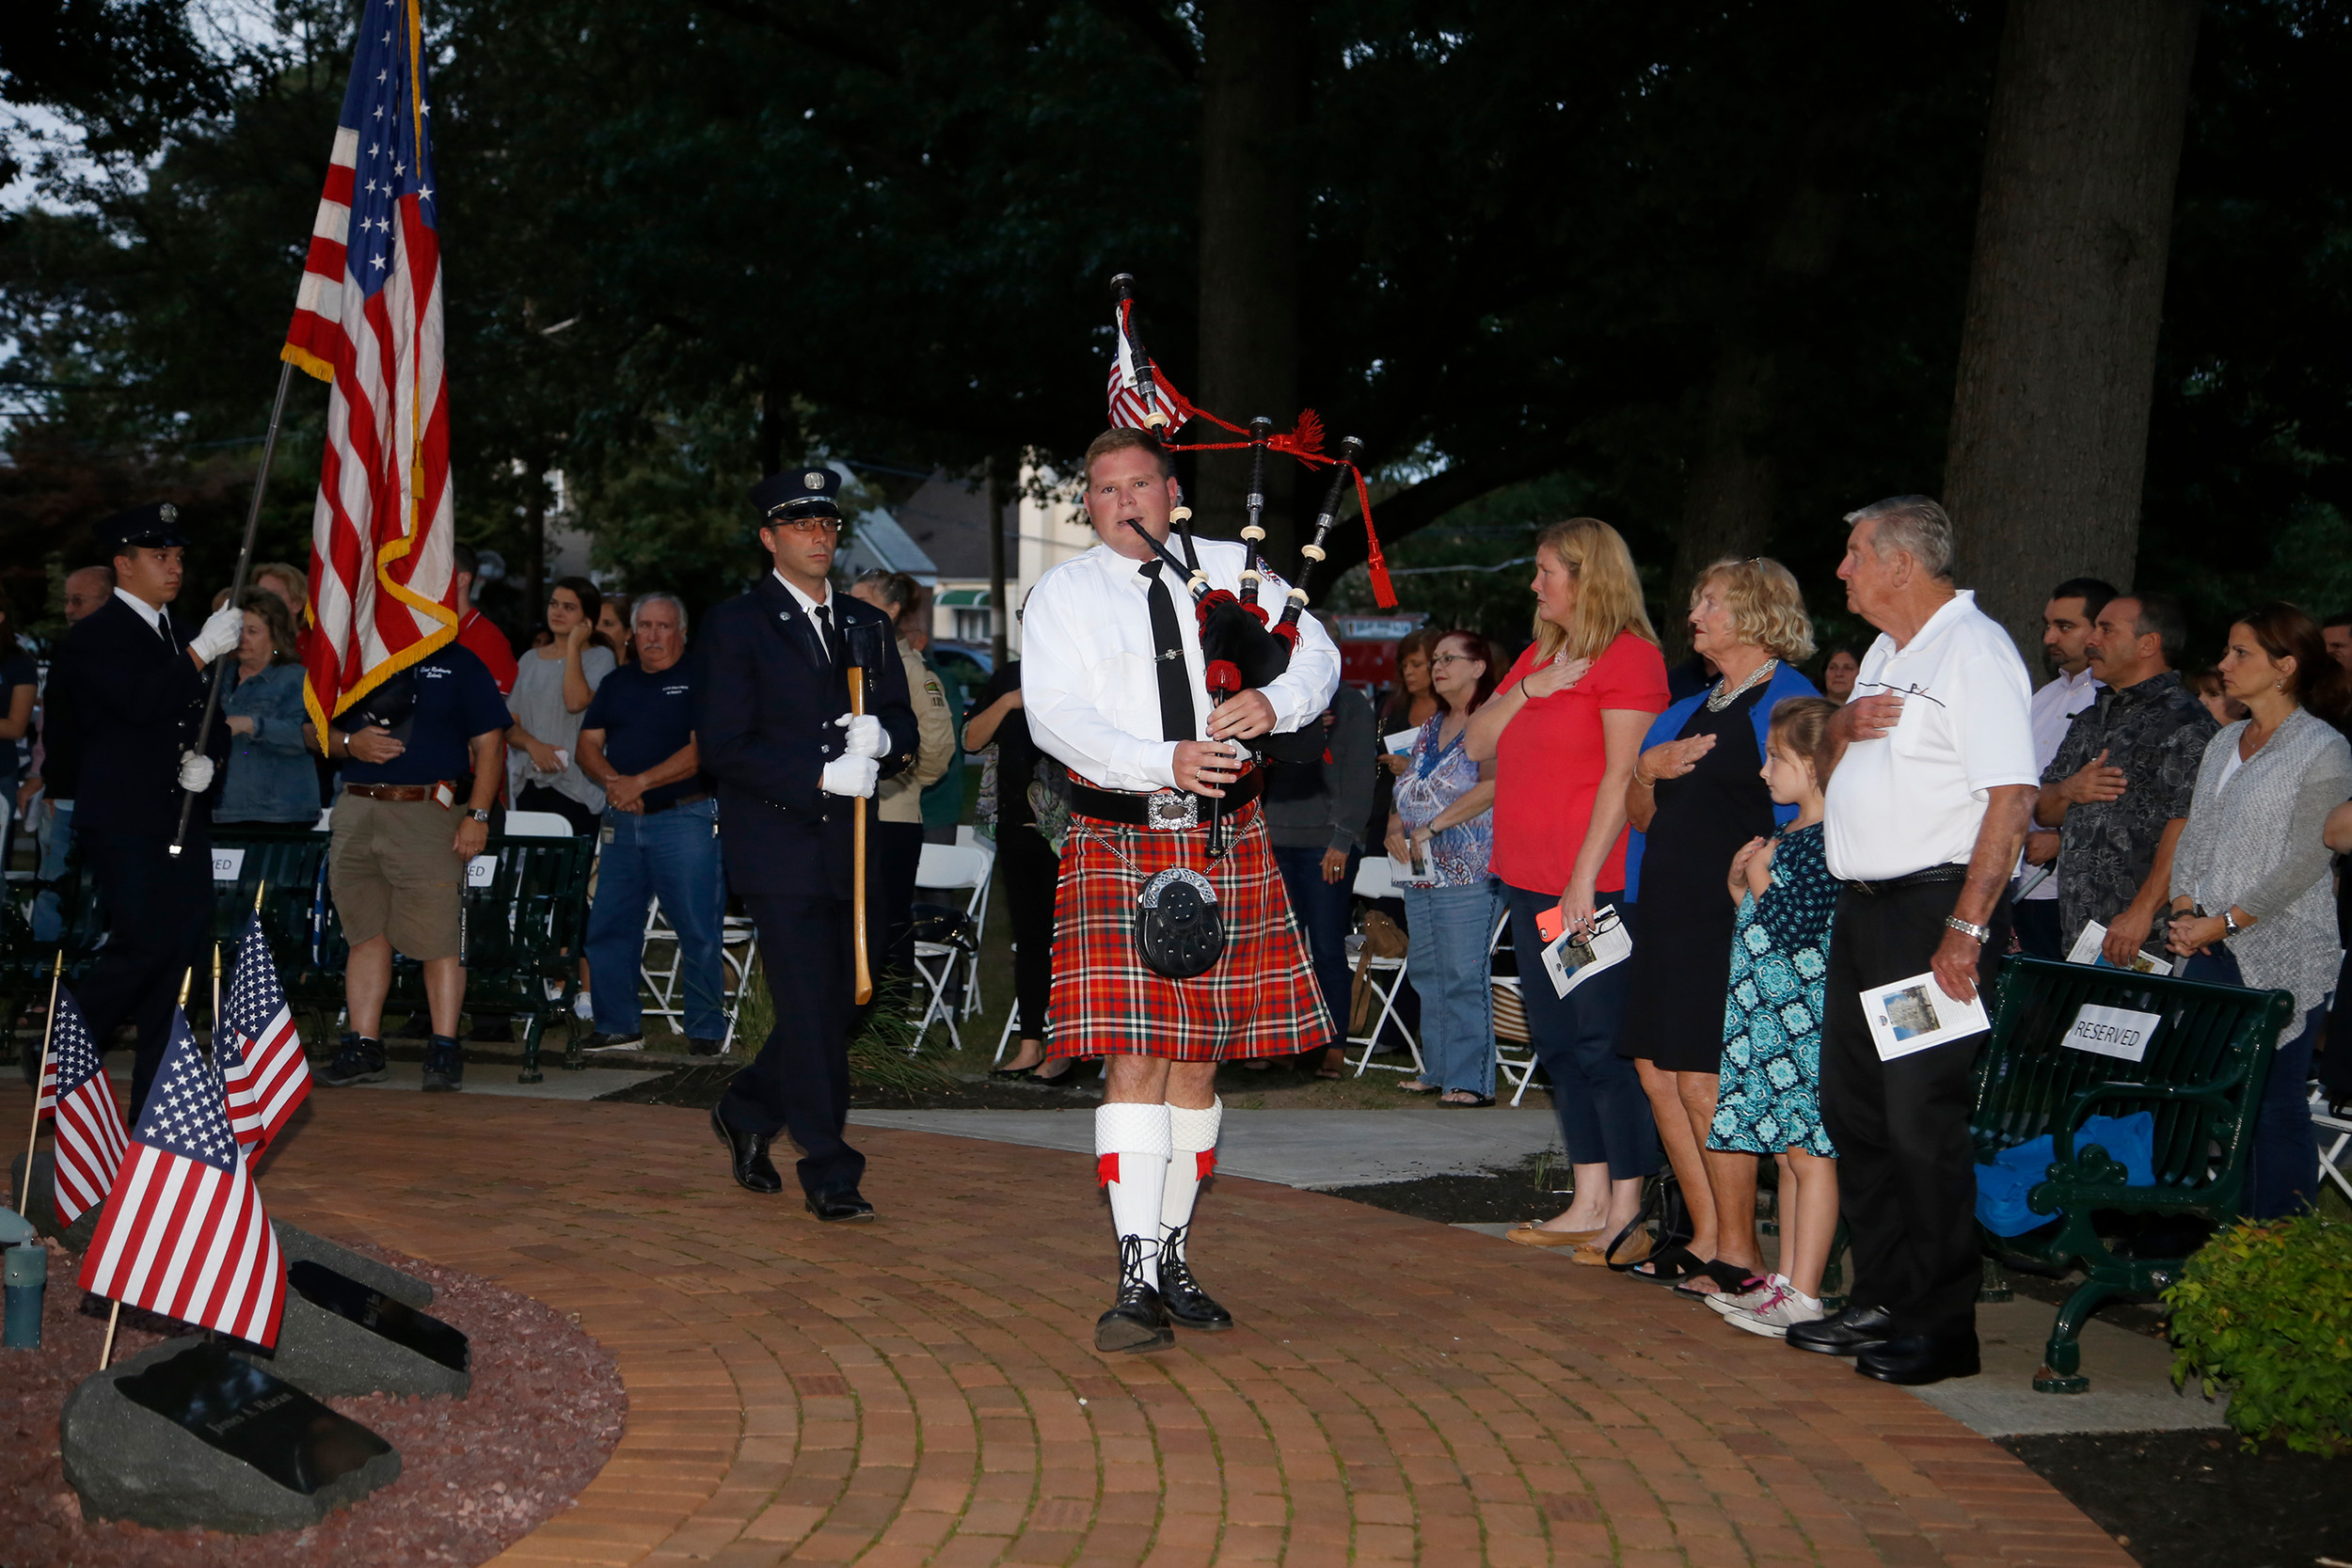 Ken Gilloon Jr. played the bagpipes at East Rockaway's ceremony commemorating the 16th anniversary of the terrorist attacks of Sept. 11, 2001.